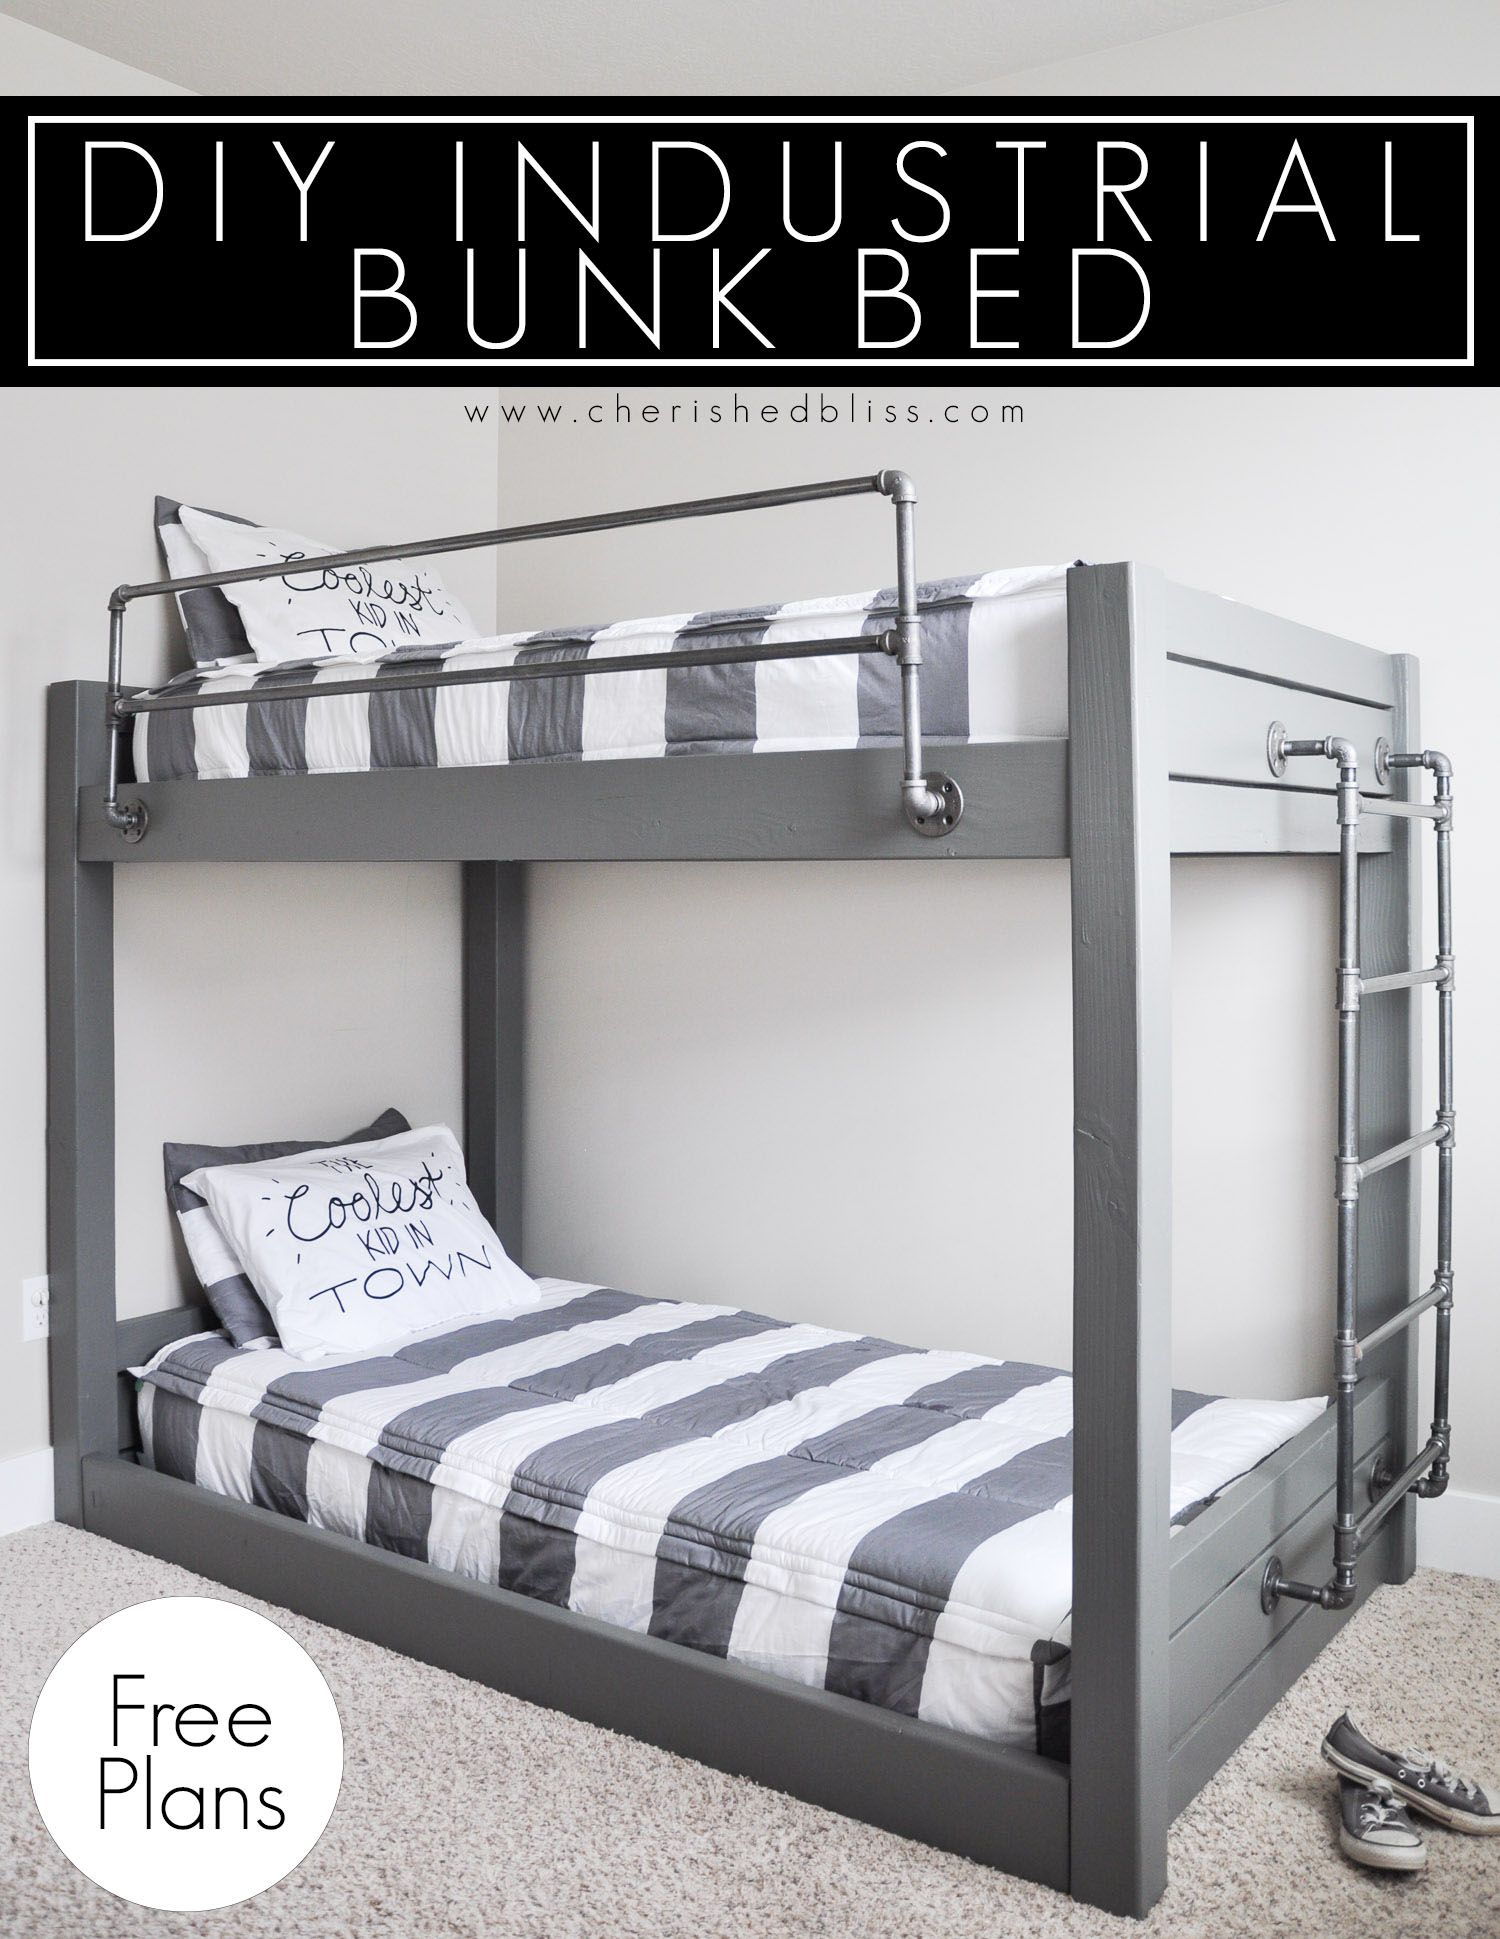 Diy Industrial Bunk Bed Free Plans Kids Bedroom Tutorials Bunk